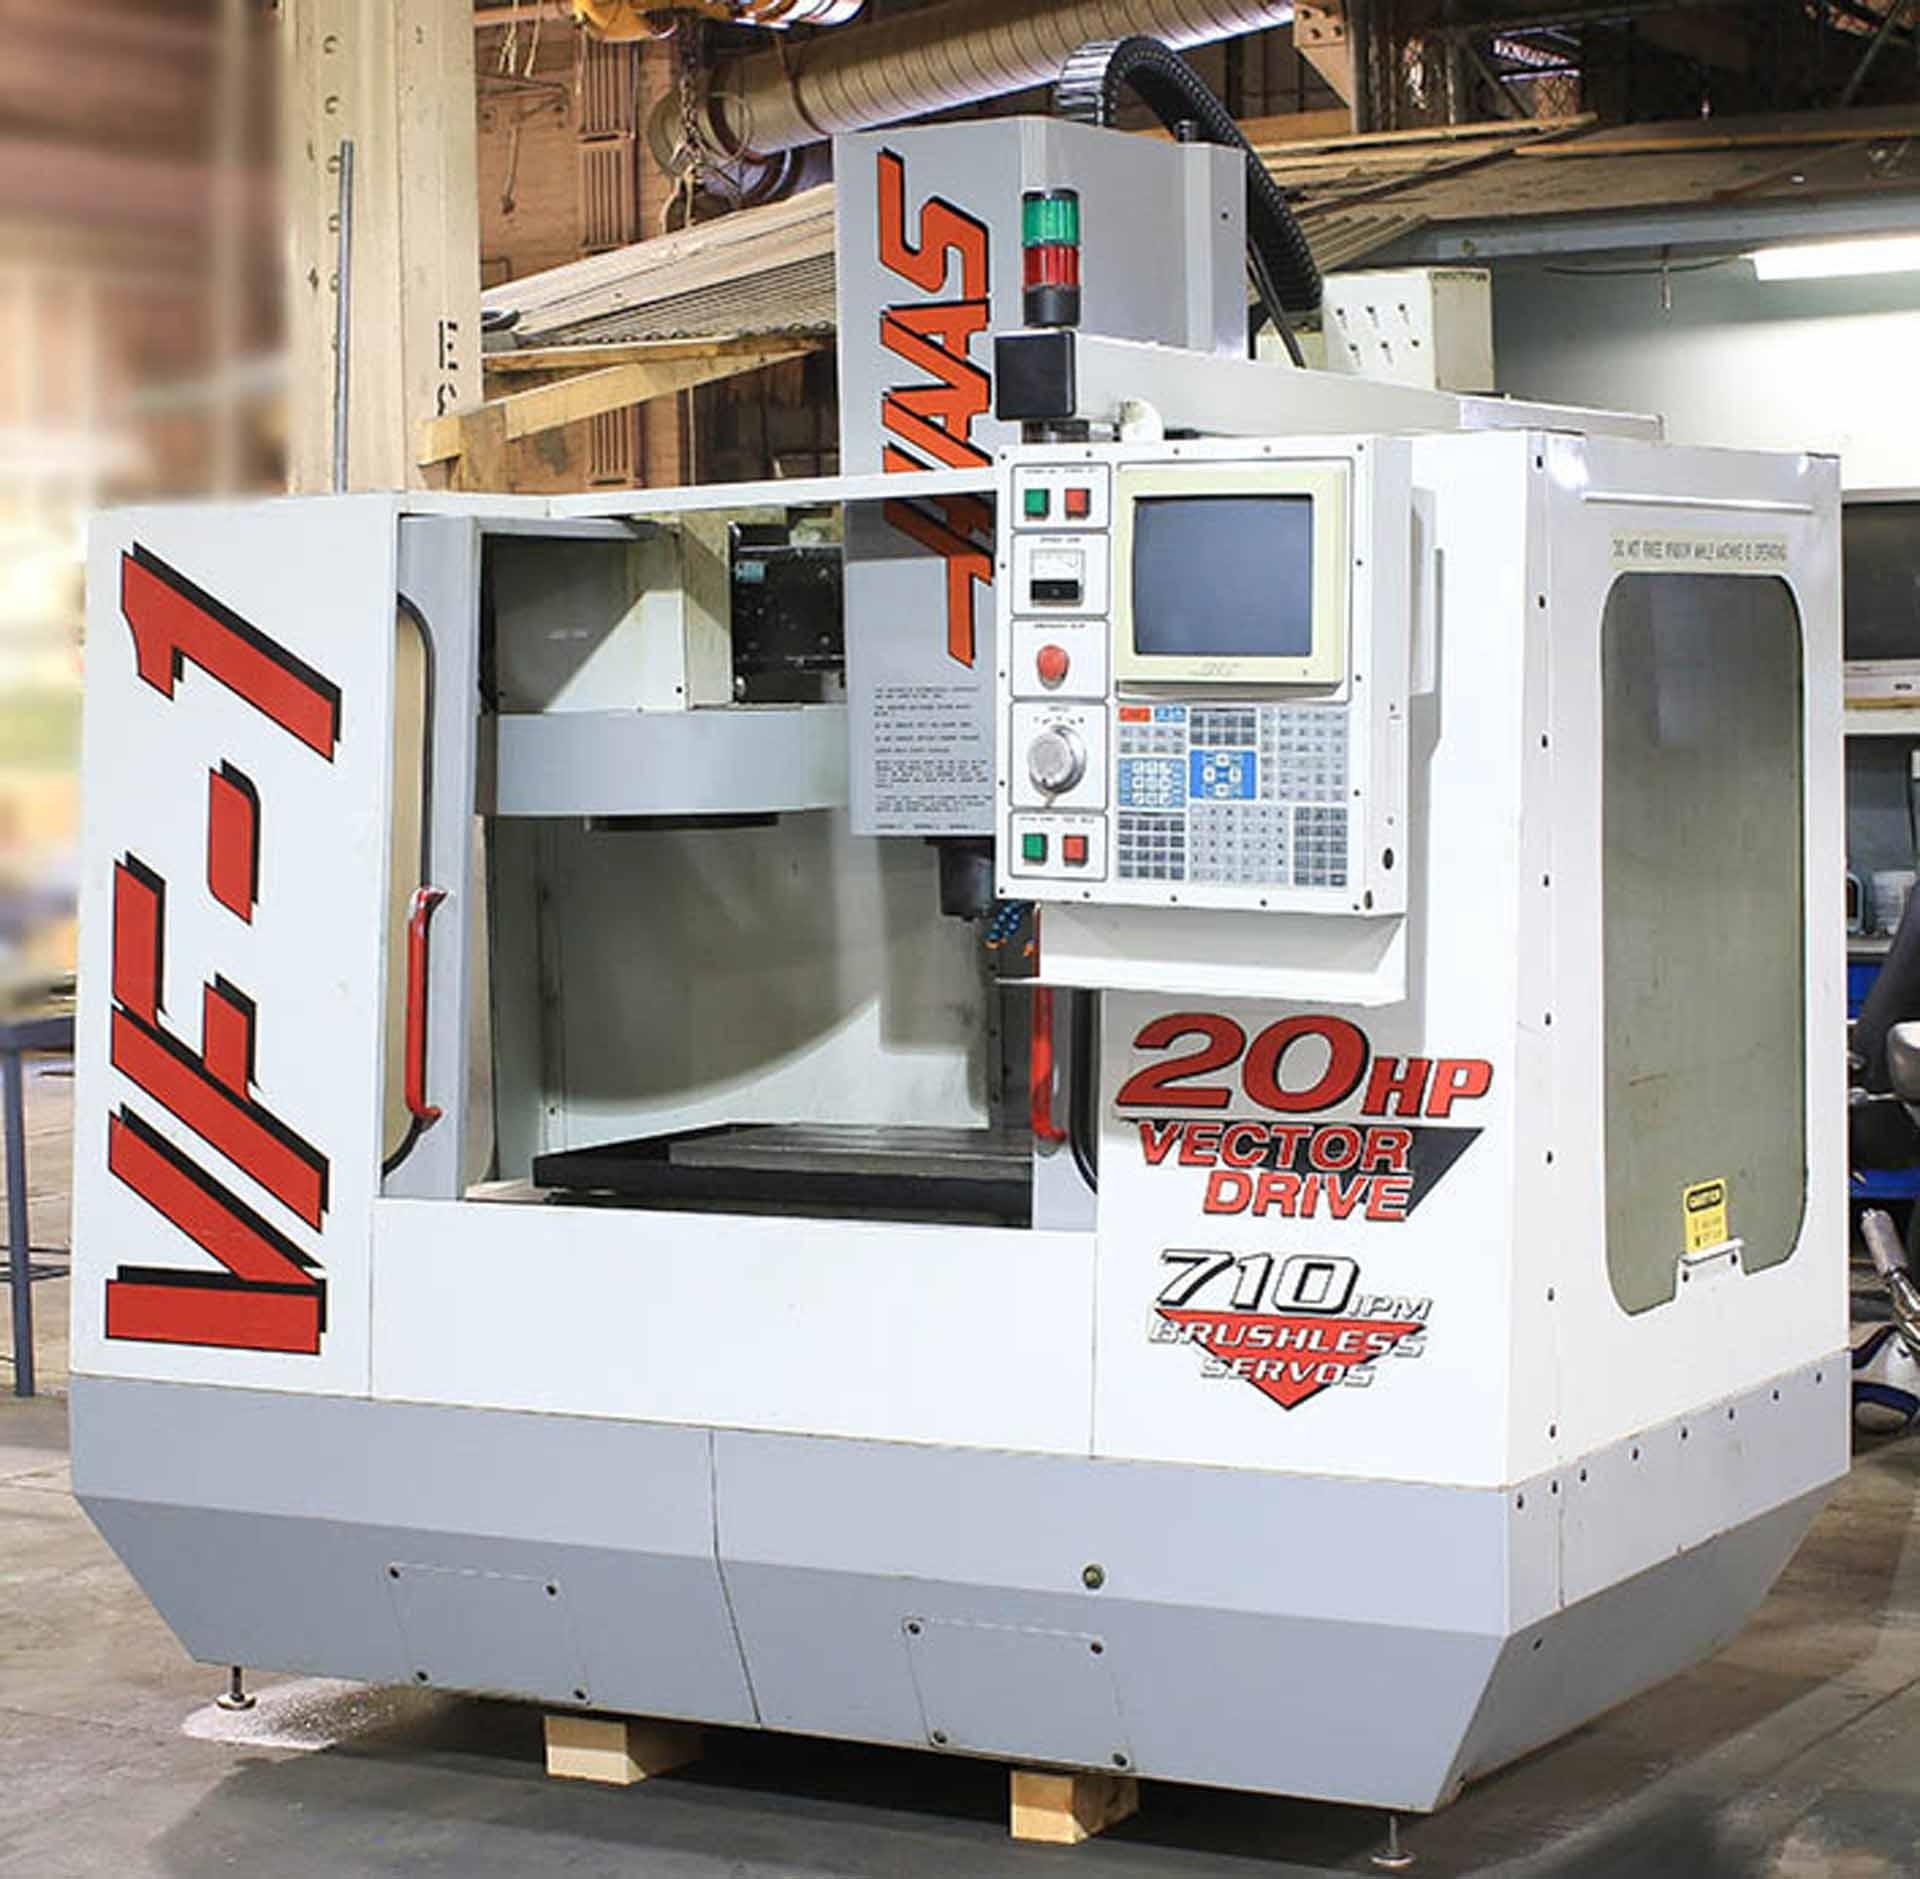 HAAS VF-1 used for sale price #9201177, 1997 > buy from CAE